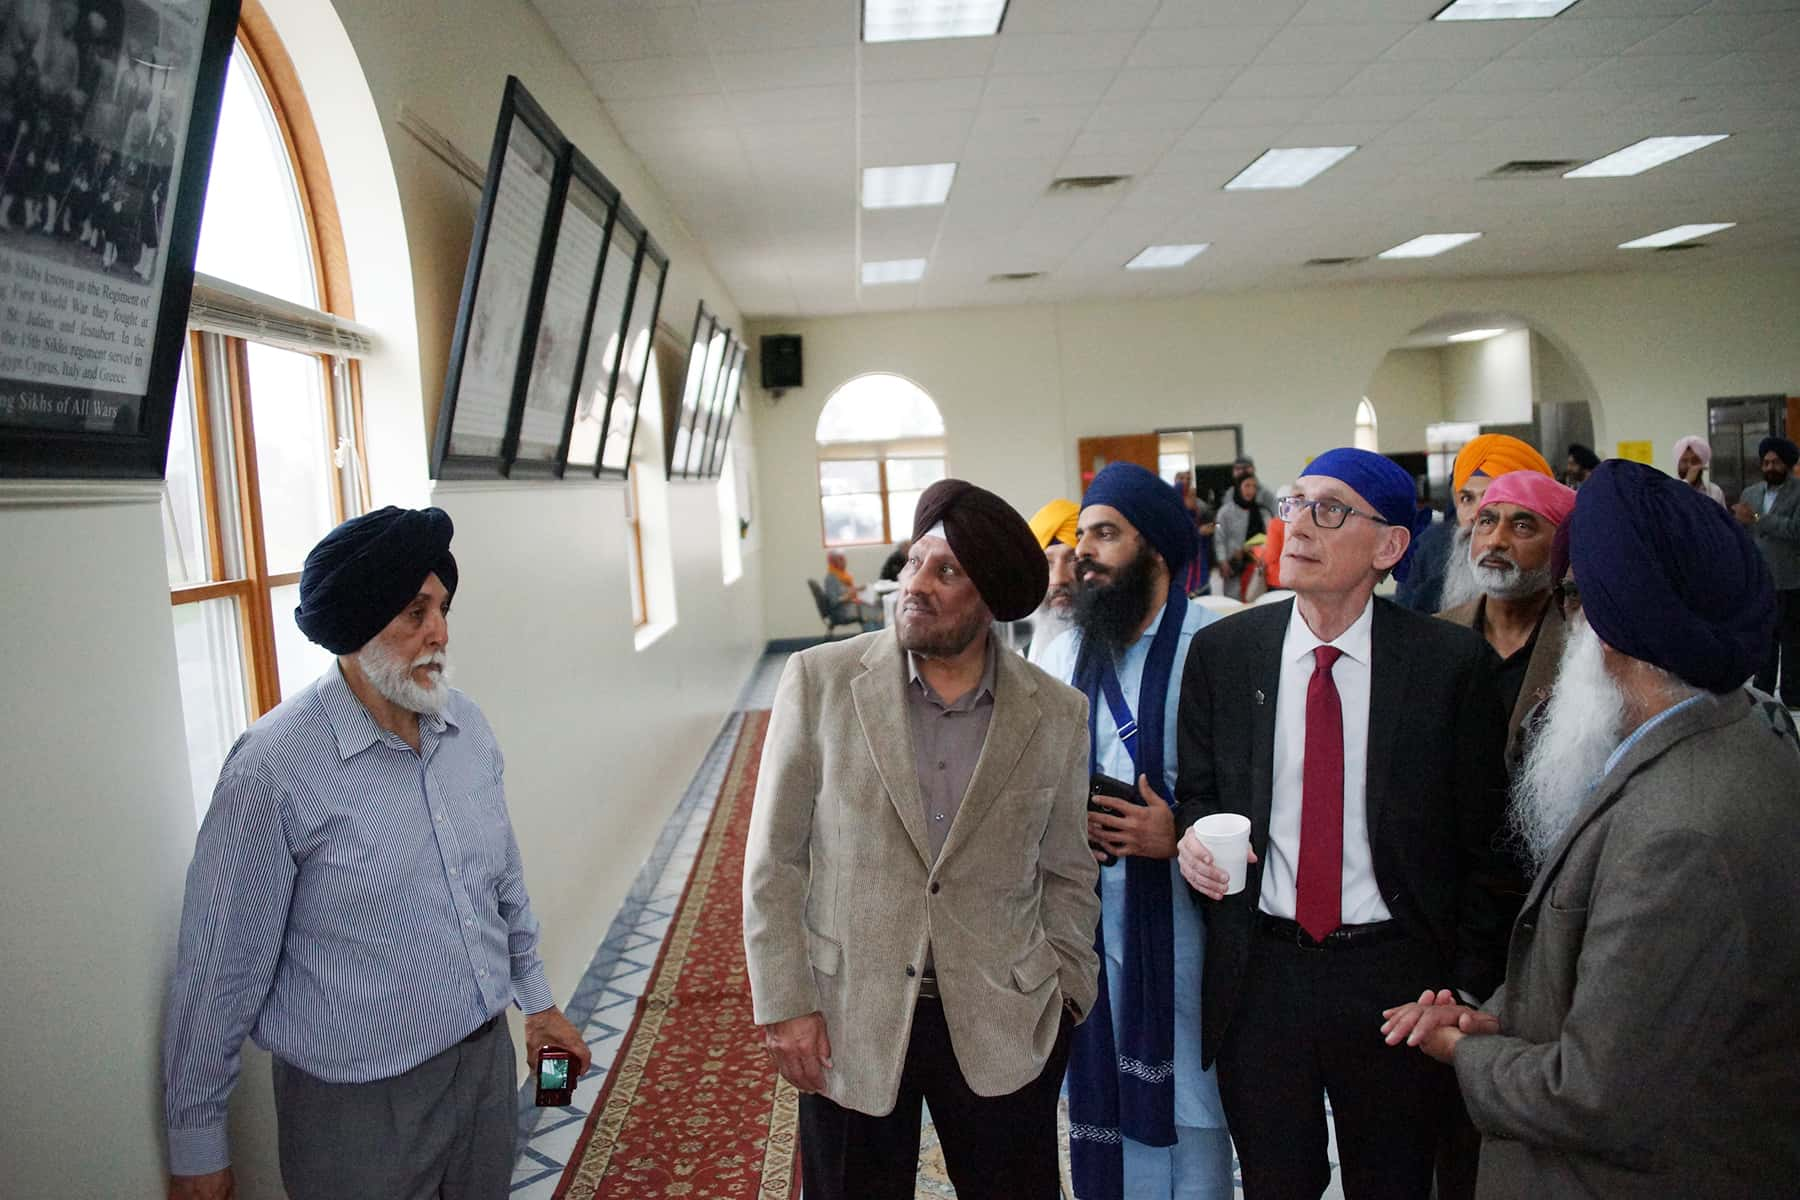 05_043019_sikhtempleevers_0923